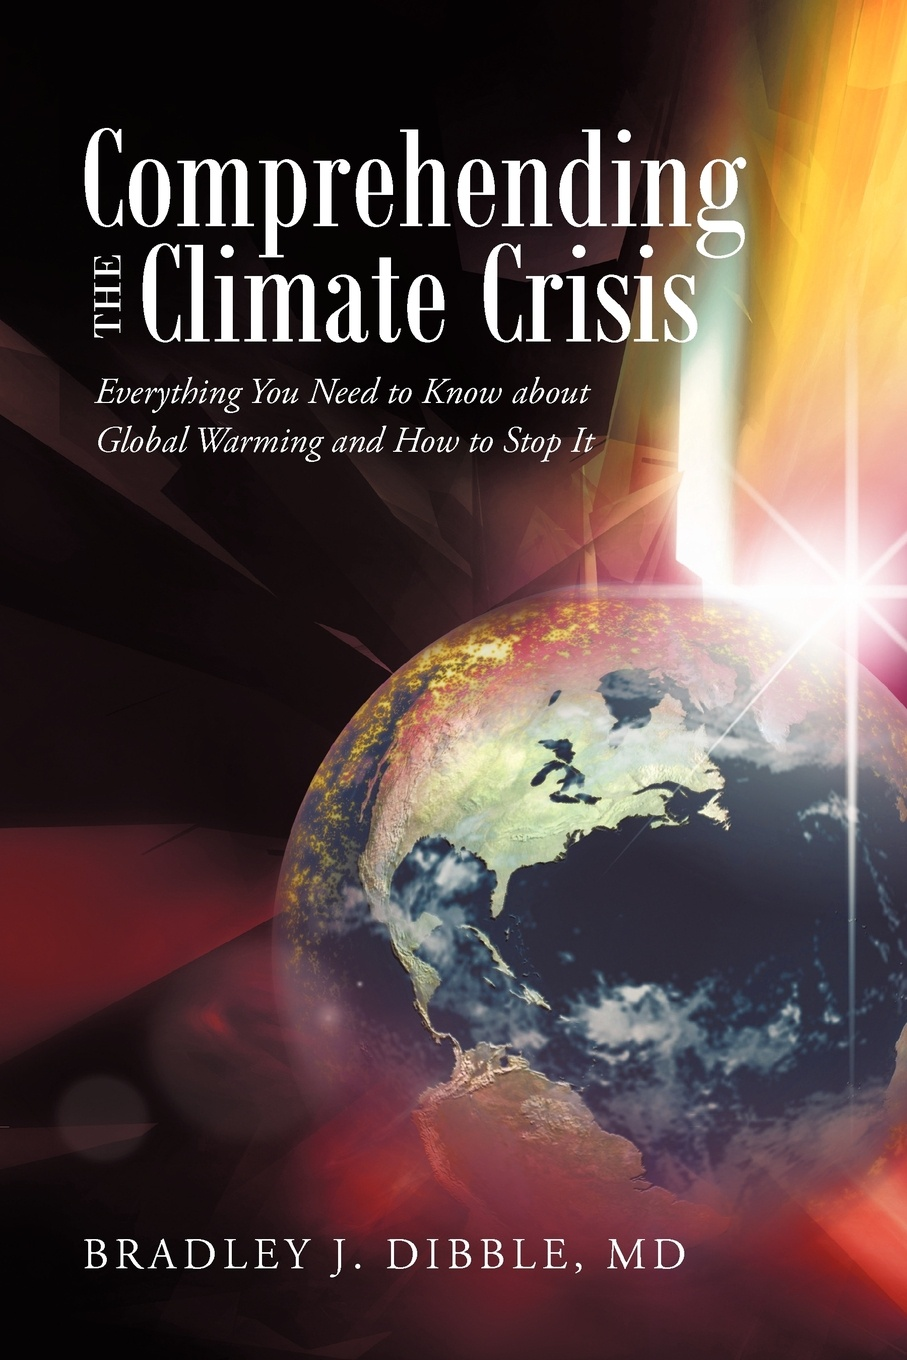 Comprehending the Climate Crisis. Everything You Need to Know about Global Warming and How to Stop It